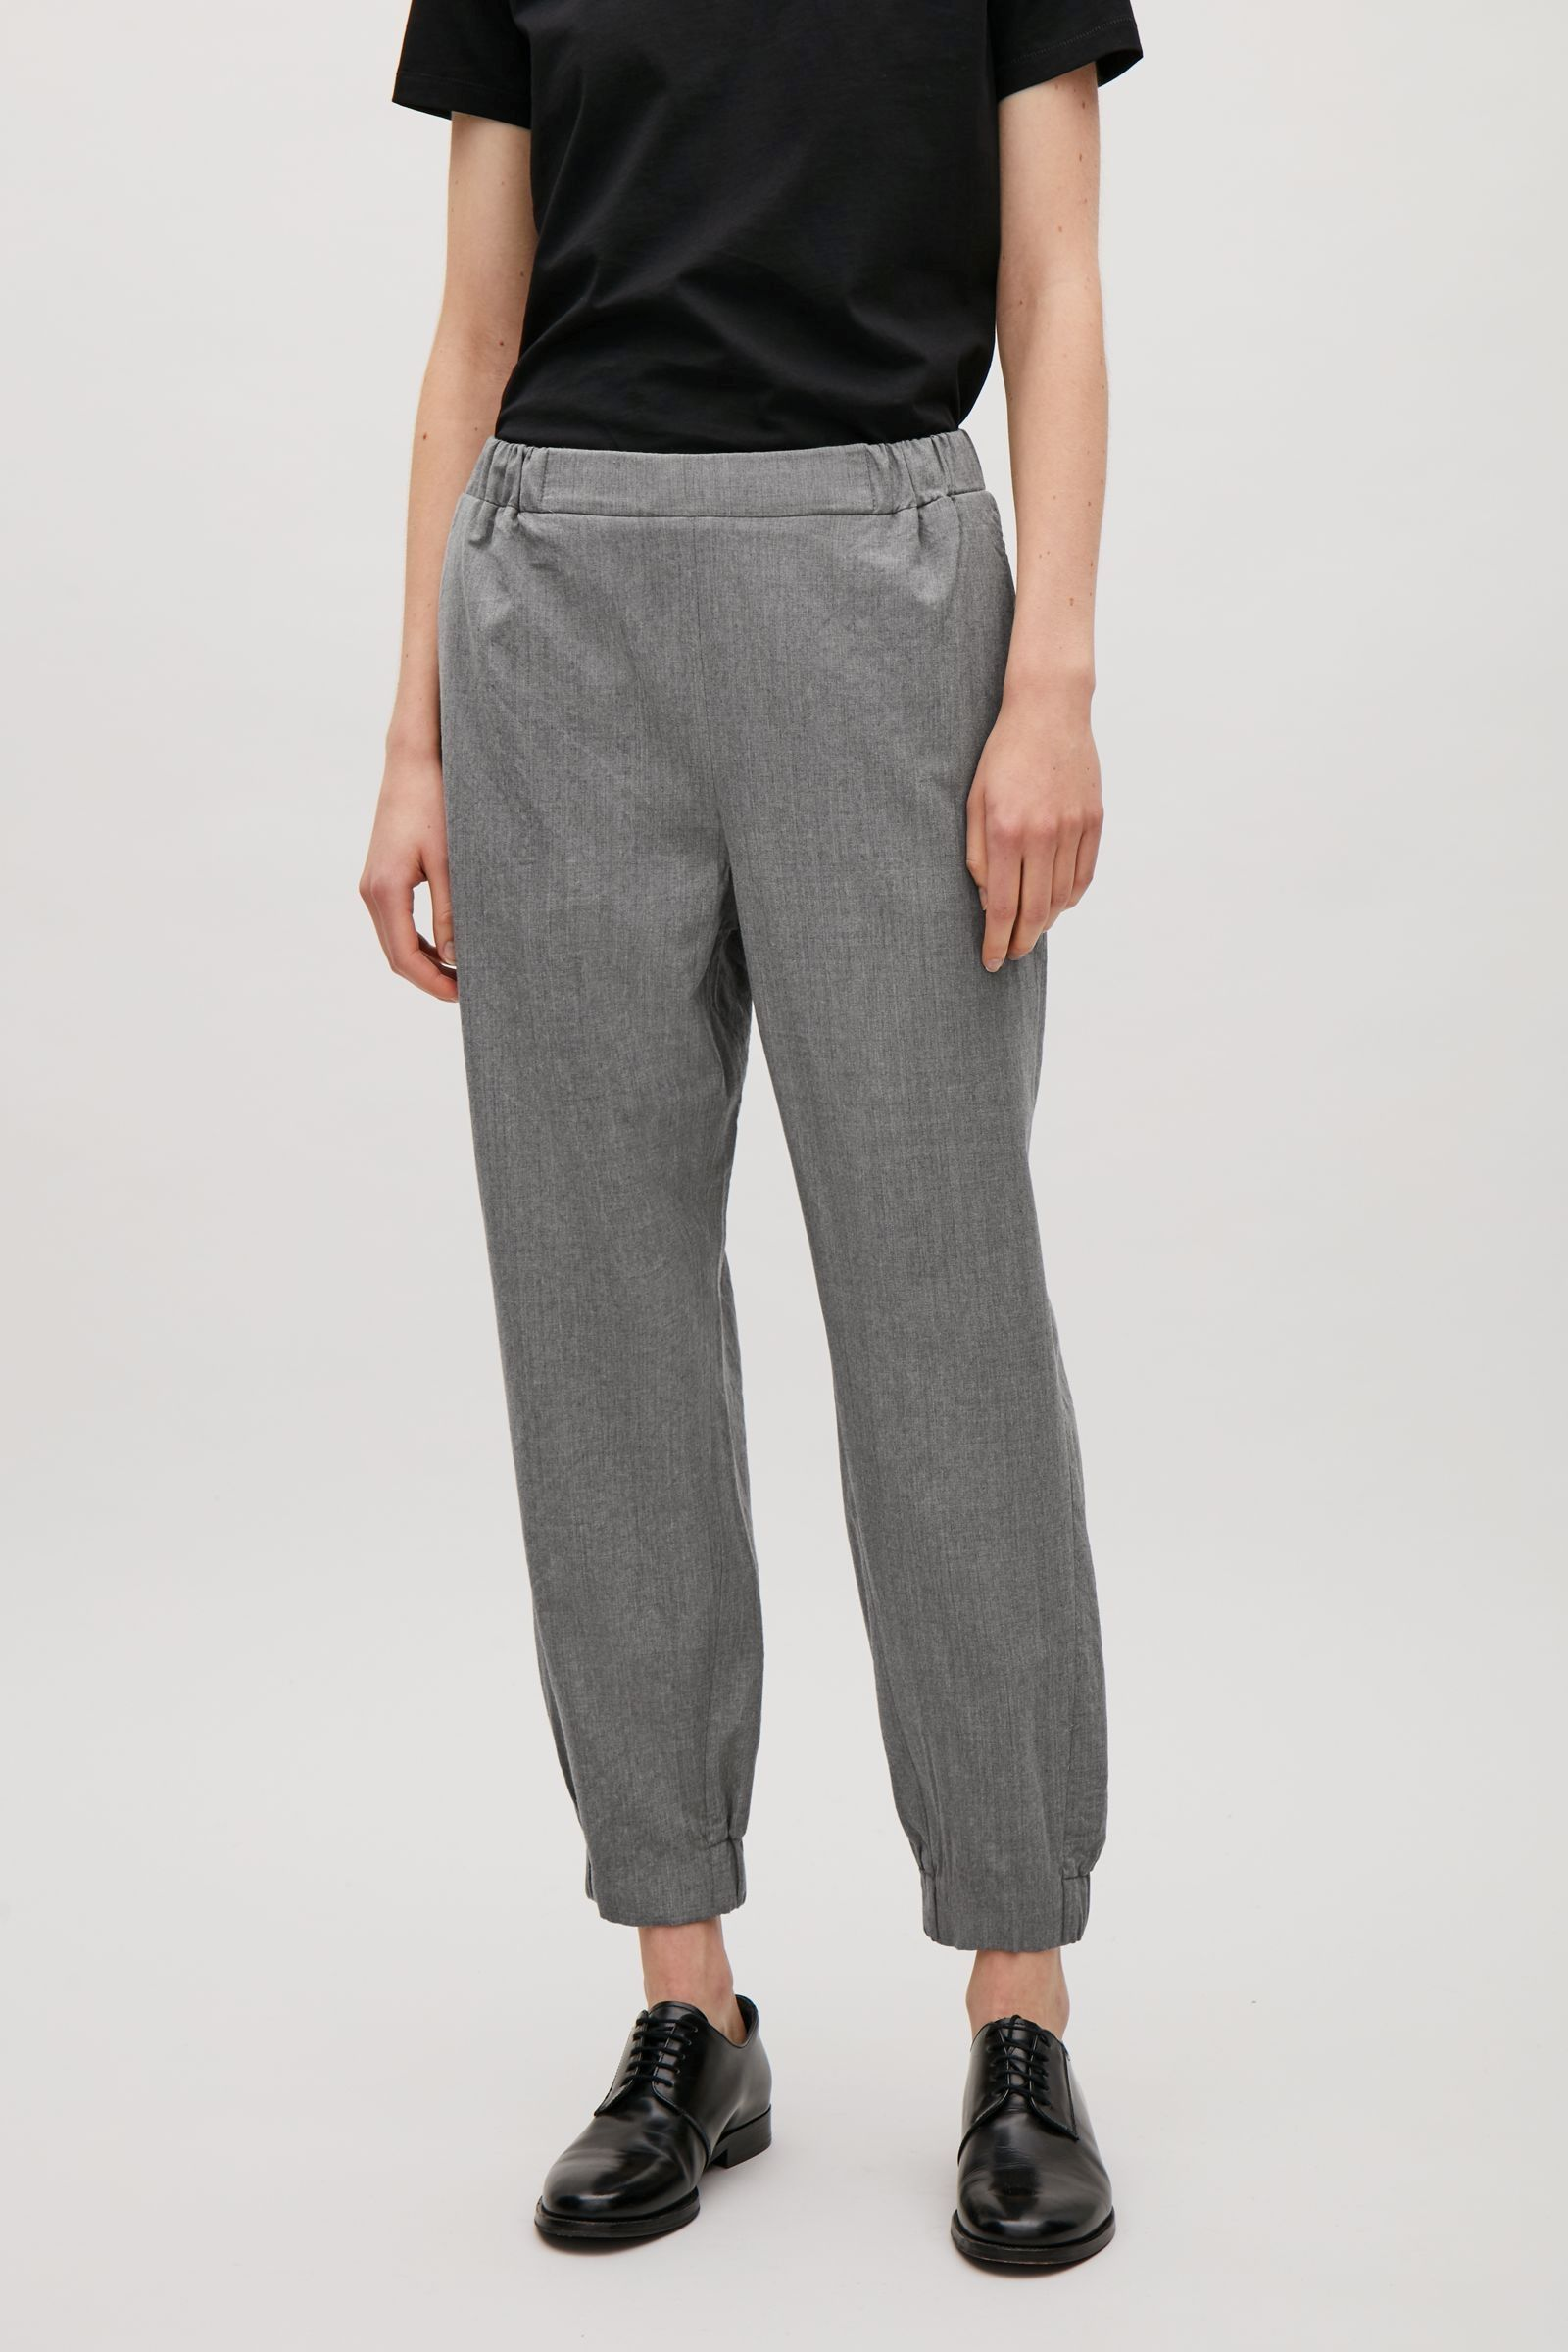 COS image 7 of Elastic waist & cuff trousers in Grey